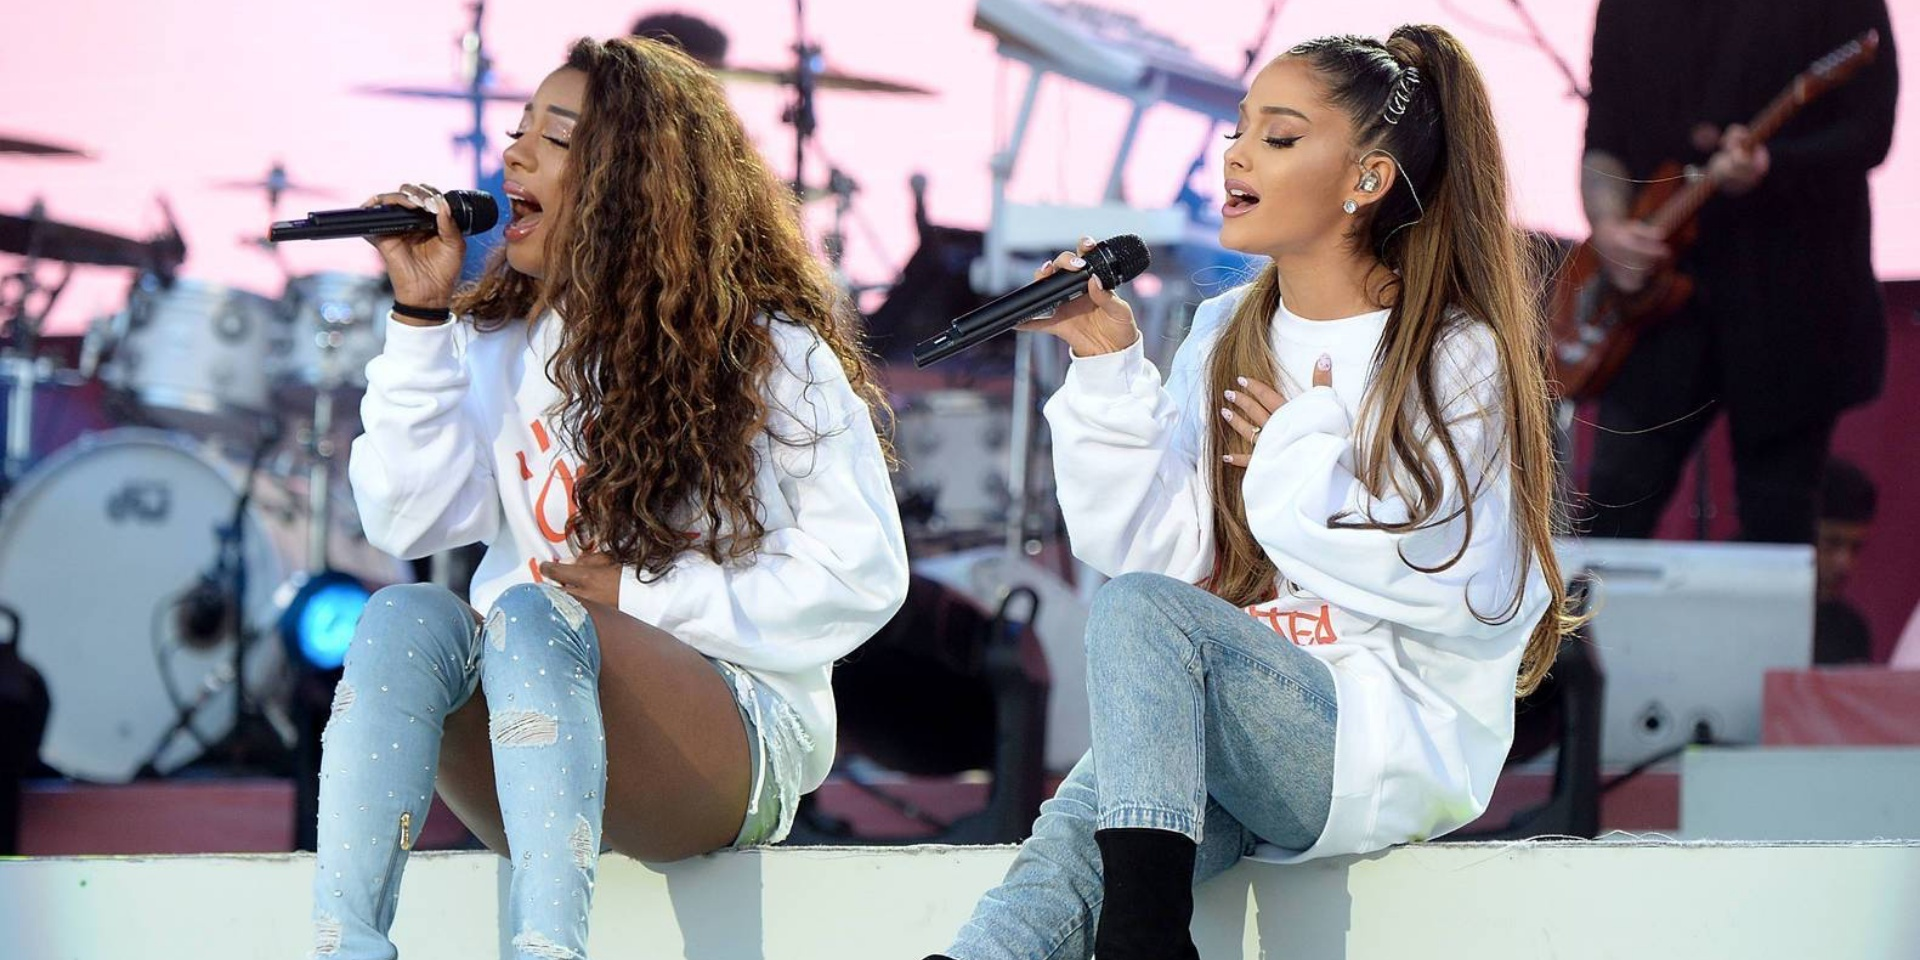 Ariana Grande to unveil new song with Victoria Monét next week